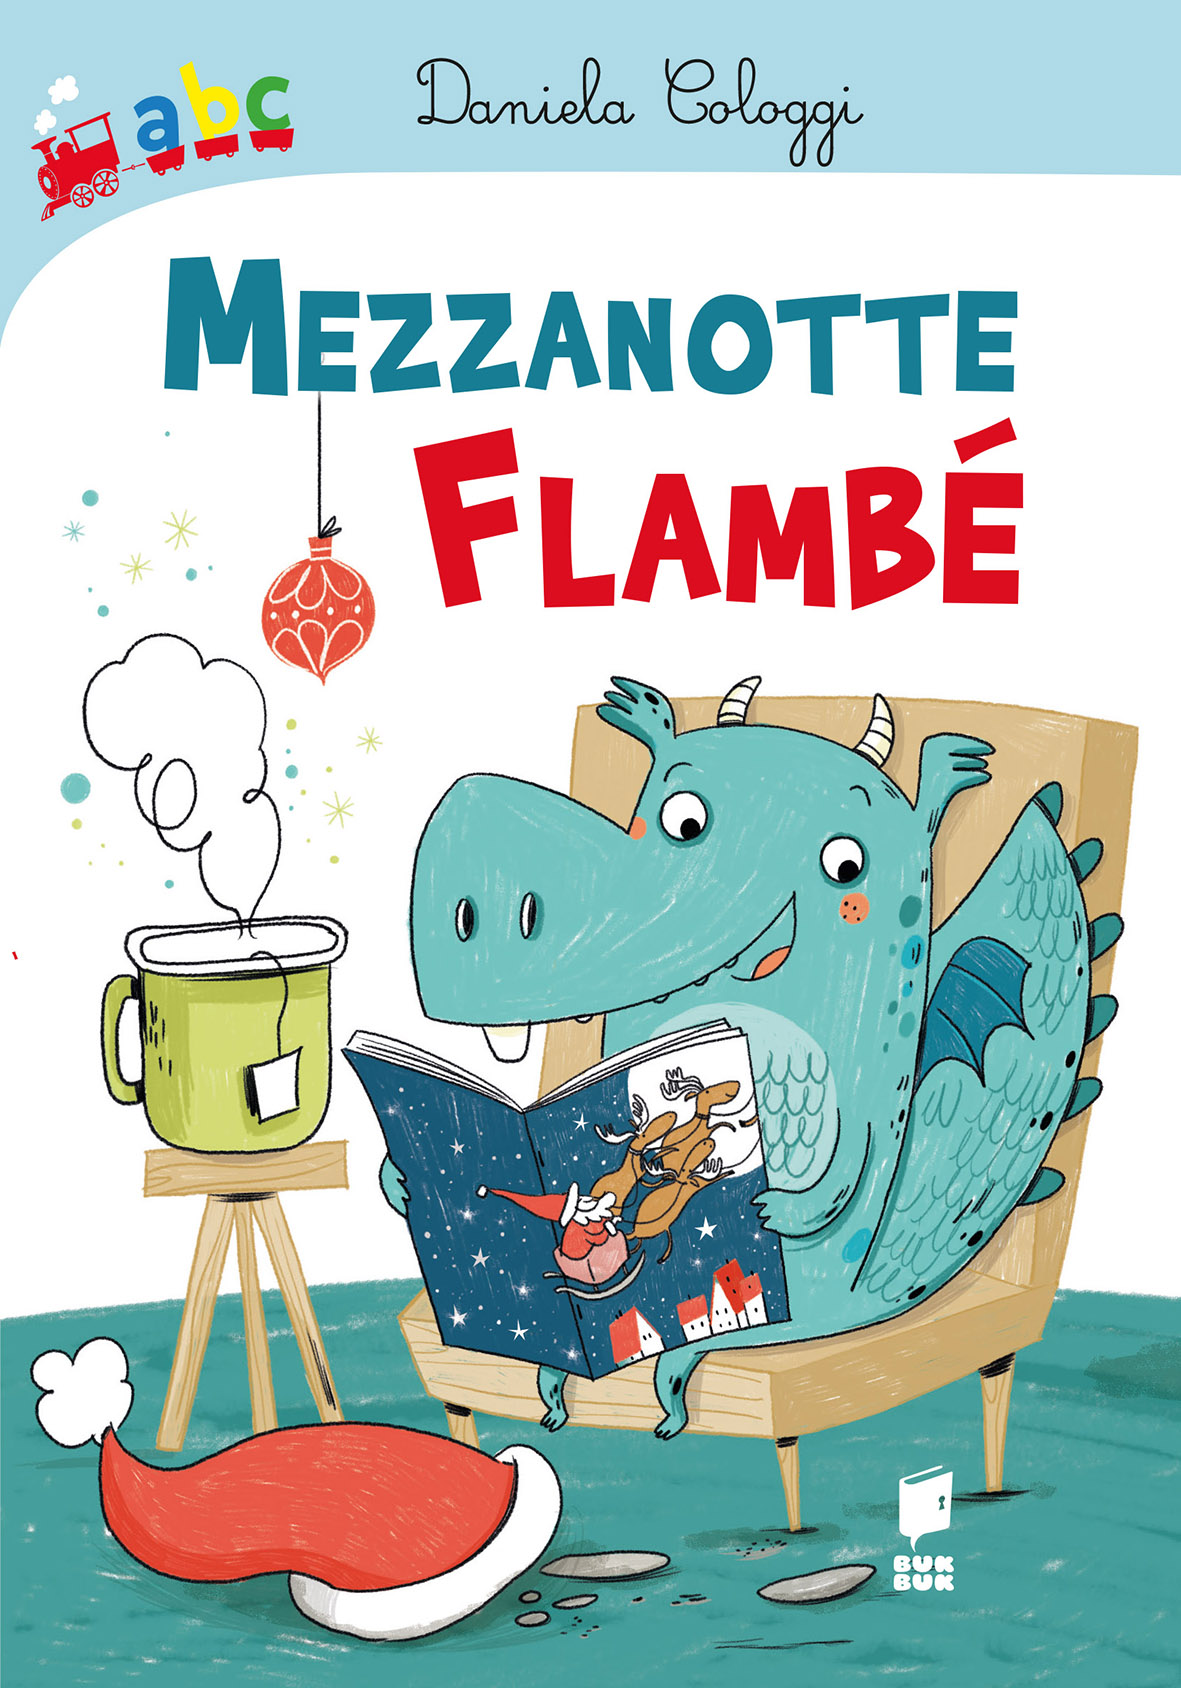 cover-mezzanotte-flambe-copia-3